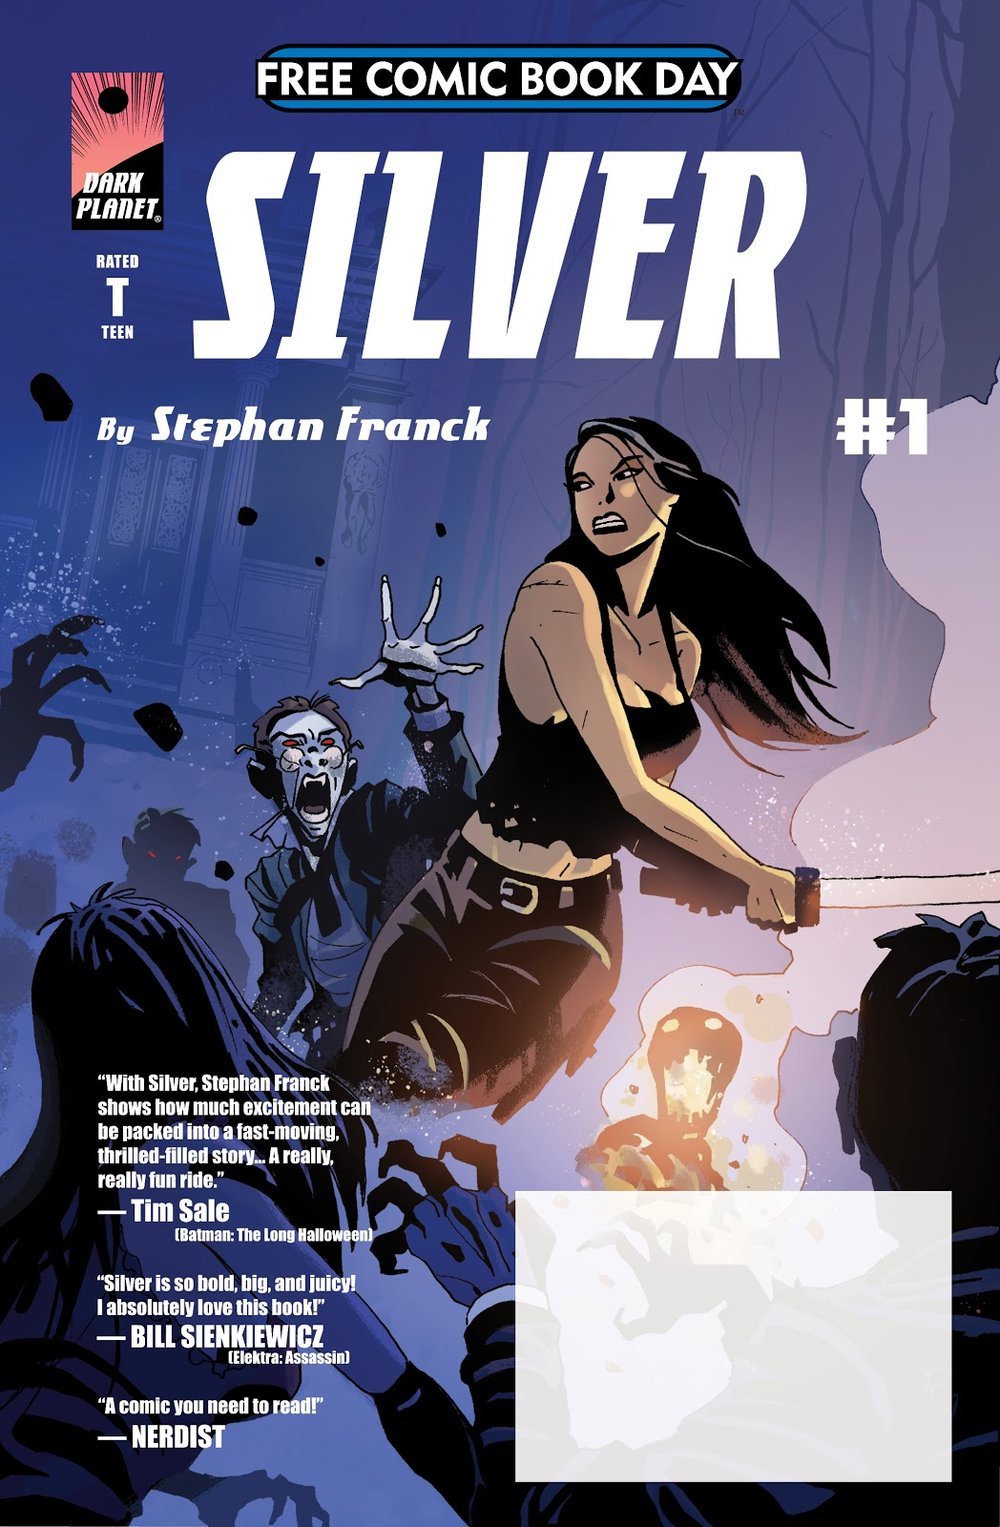 FCBD-Silver-review copy.jpg